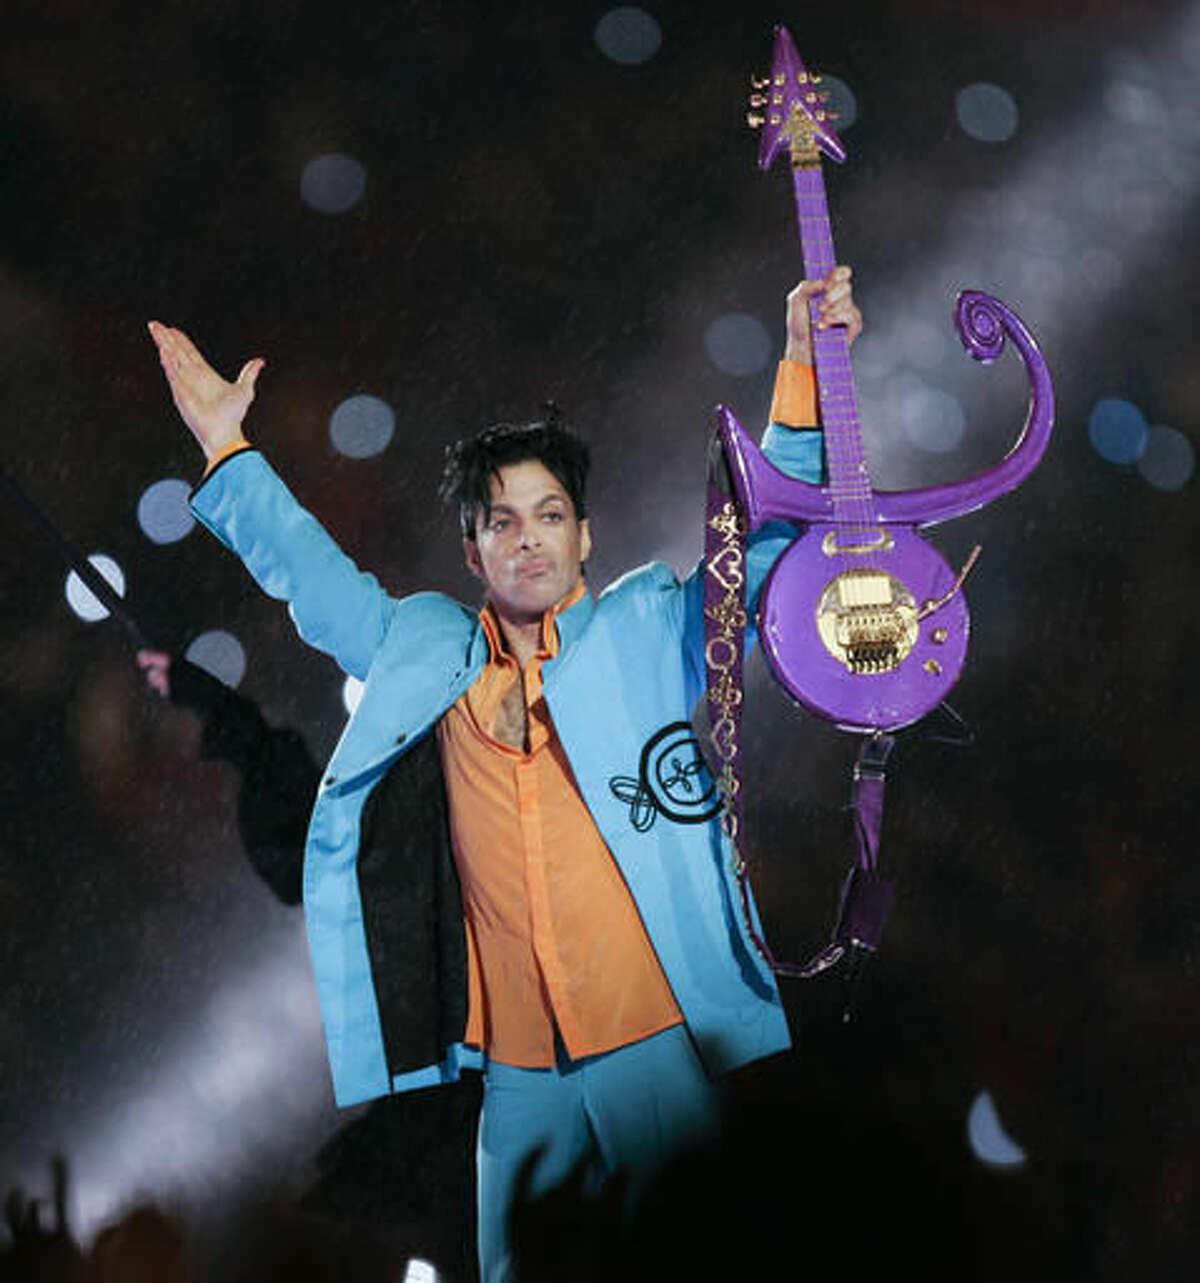 FILE - In this Feb. 4, 2007 file photo, Prince performs during halftime of the Super Bowl XLI football game in Miami. A posthumous honorary degree from the University of Minnesota is in the works for music legend Prince. The university's regents are set to vote Friday, June 10, 2016, on bestowing an honorary degree from the College of Liberal Arts to Prince Rogers Nelson, who made his home in Minnesota. (AP Photo/Chris O'Meara, File)